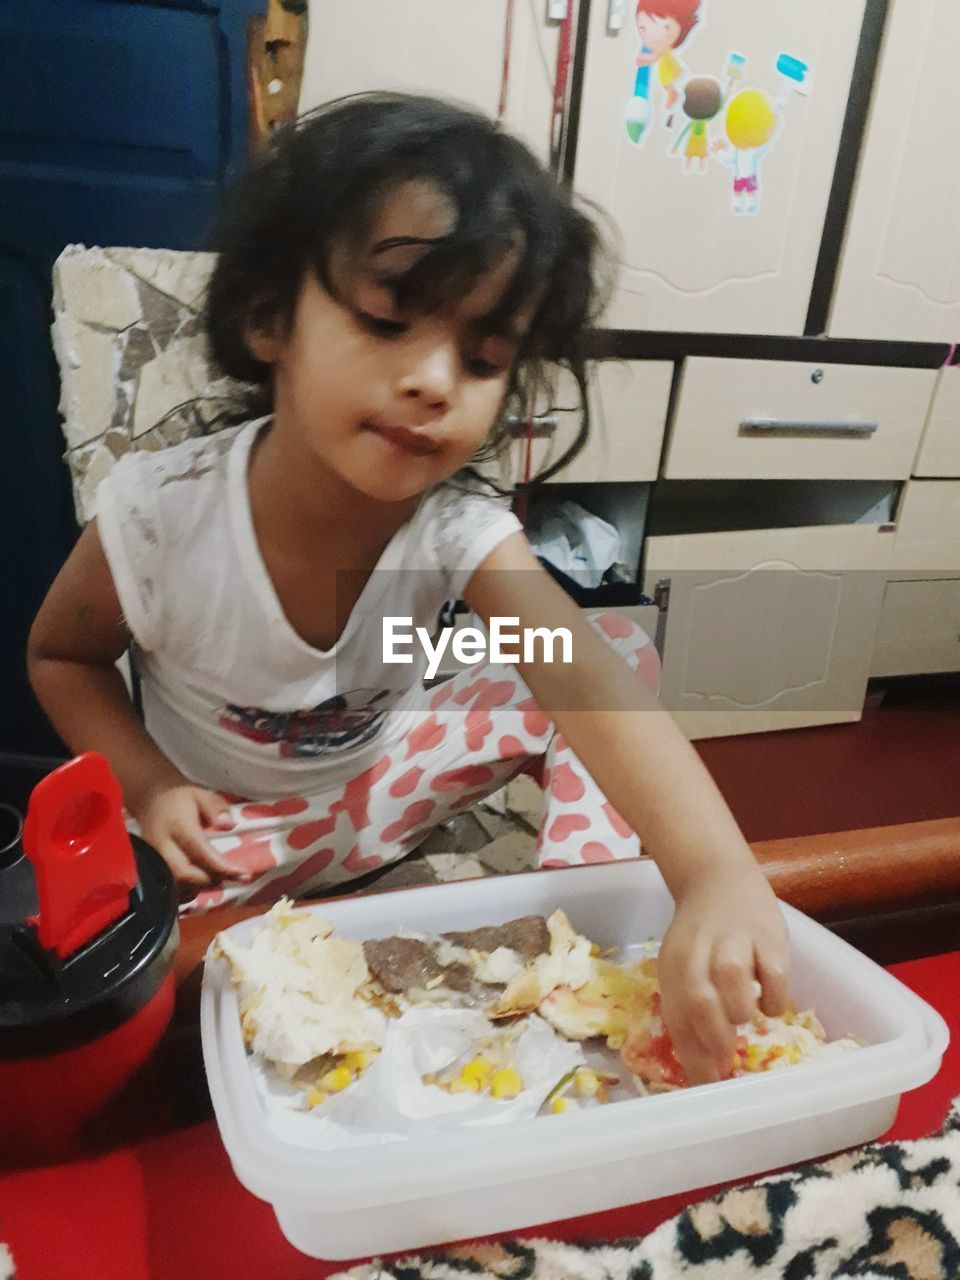 child, childhood, one person, food and drink, food, real people, girls, front view, females, women, lifestyles, indoors, casual clothing, table, leisure activity, home interior, cute, holding, innocence, preparing food